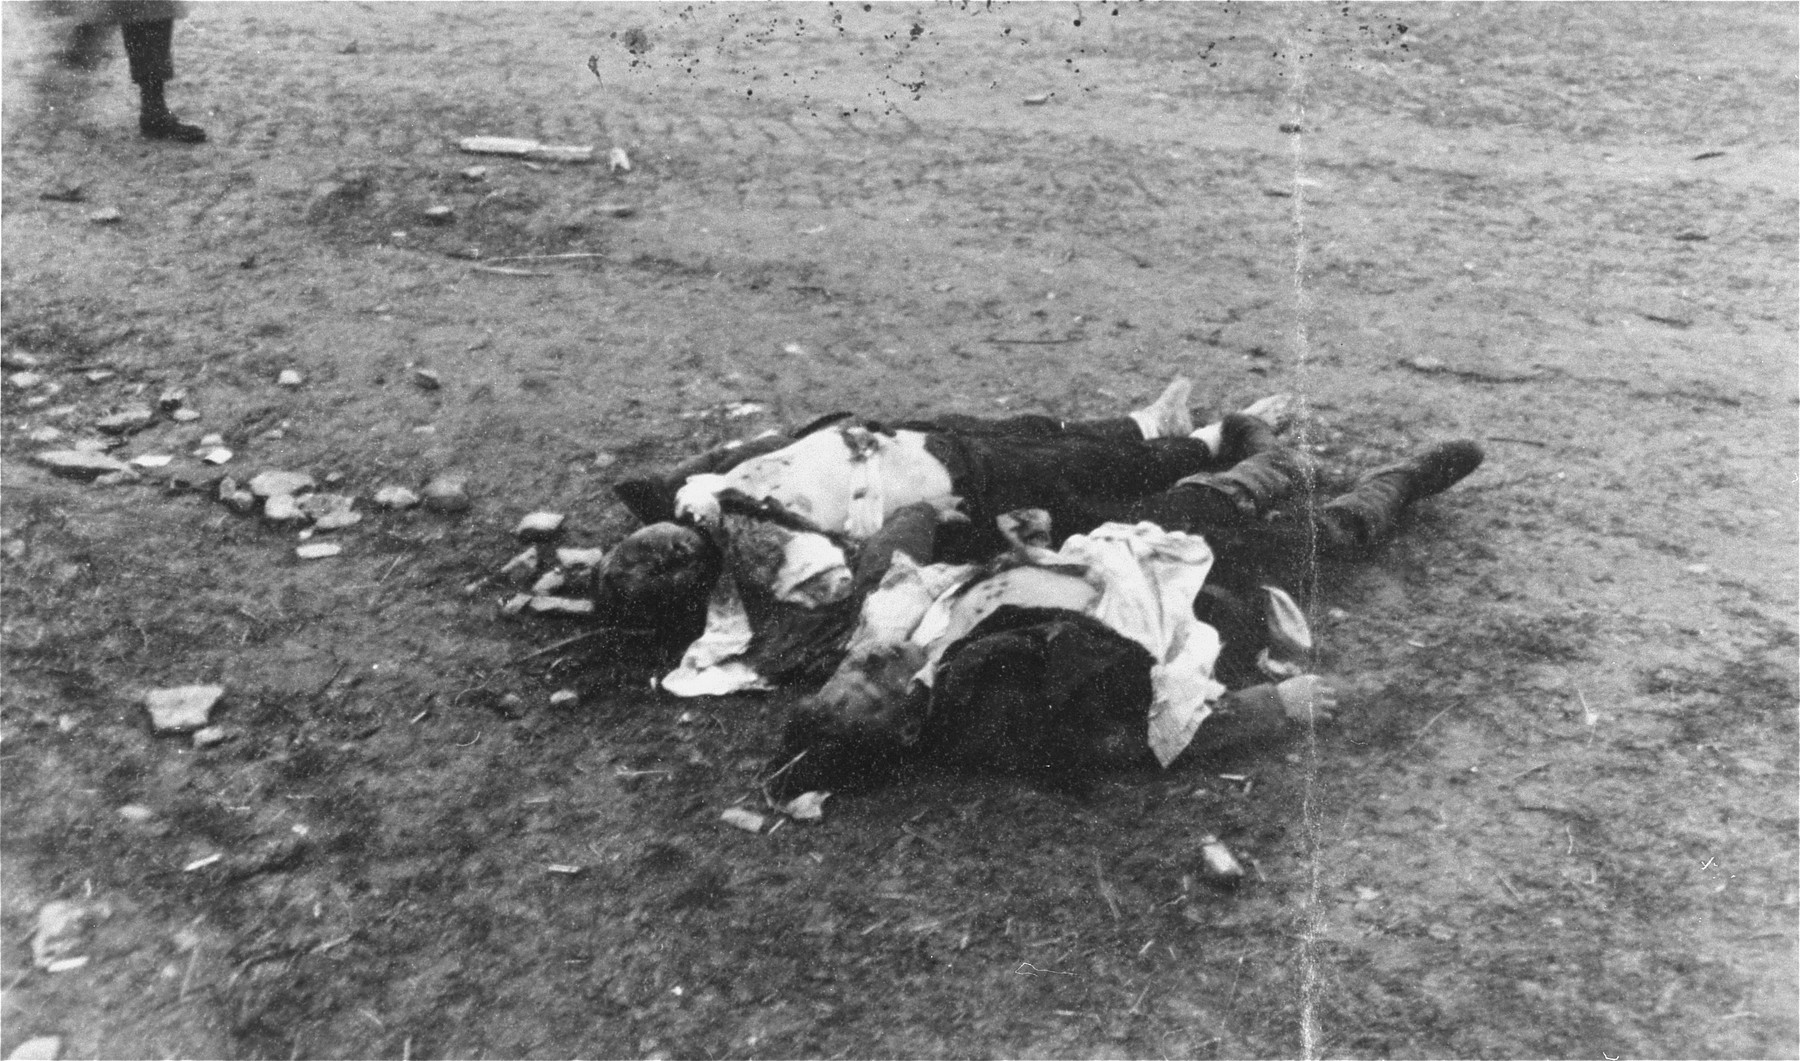 Corpses found in Ohrdruf awaiting burial.